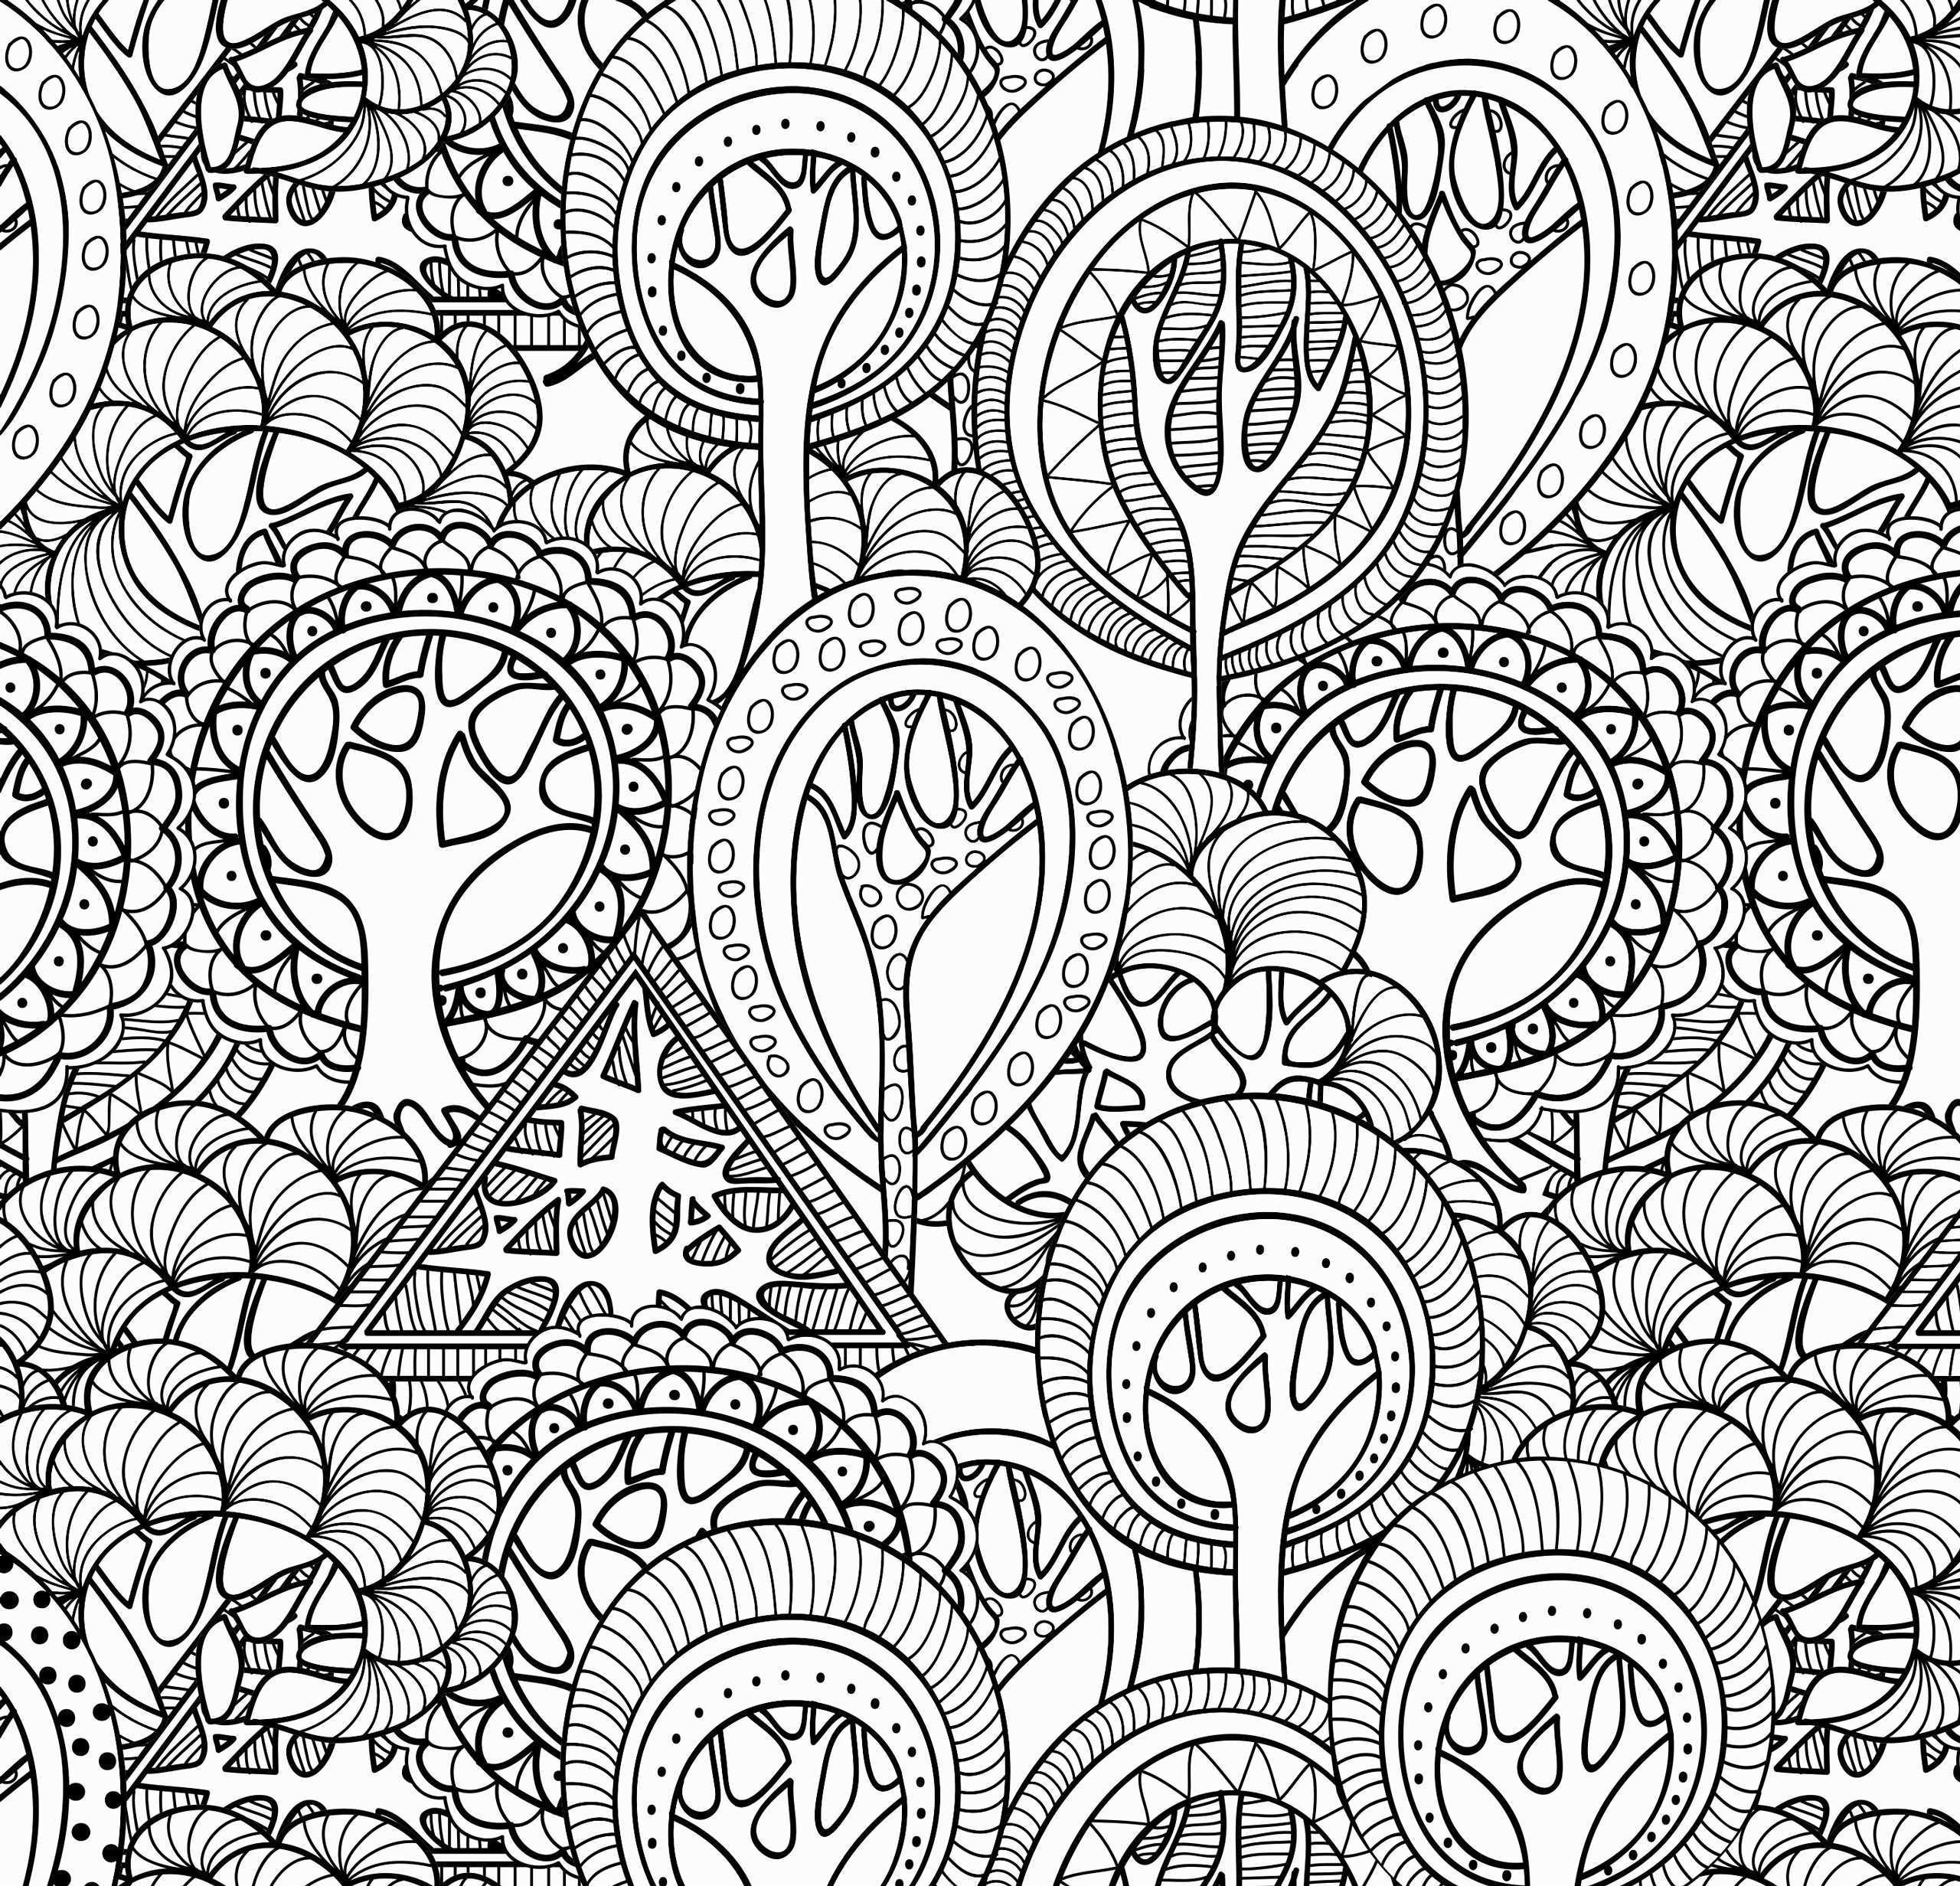 Cool Coloring Pages to Print